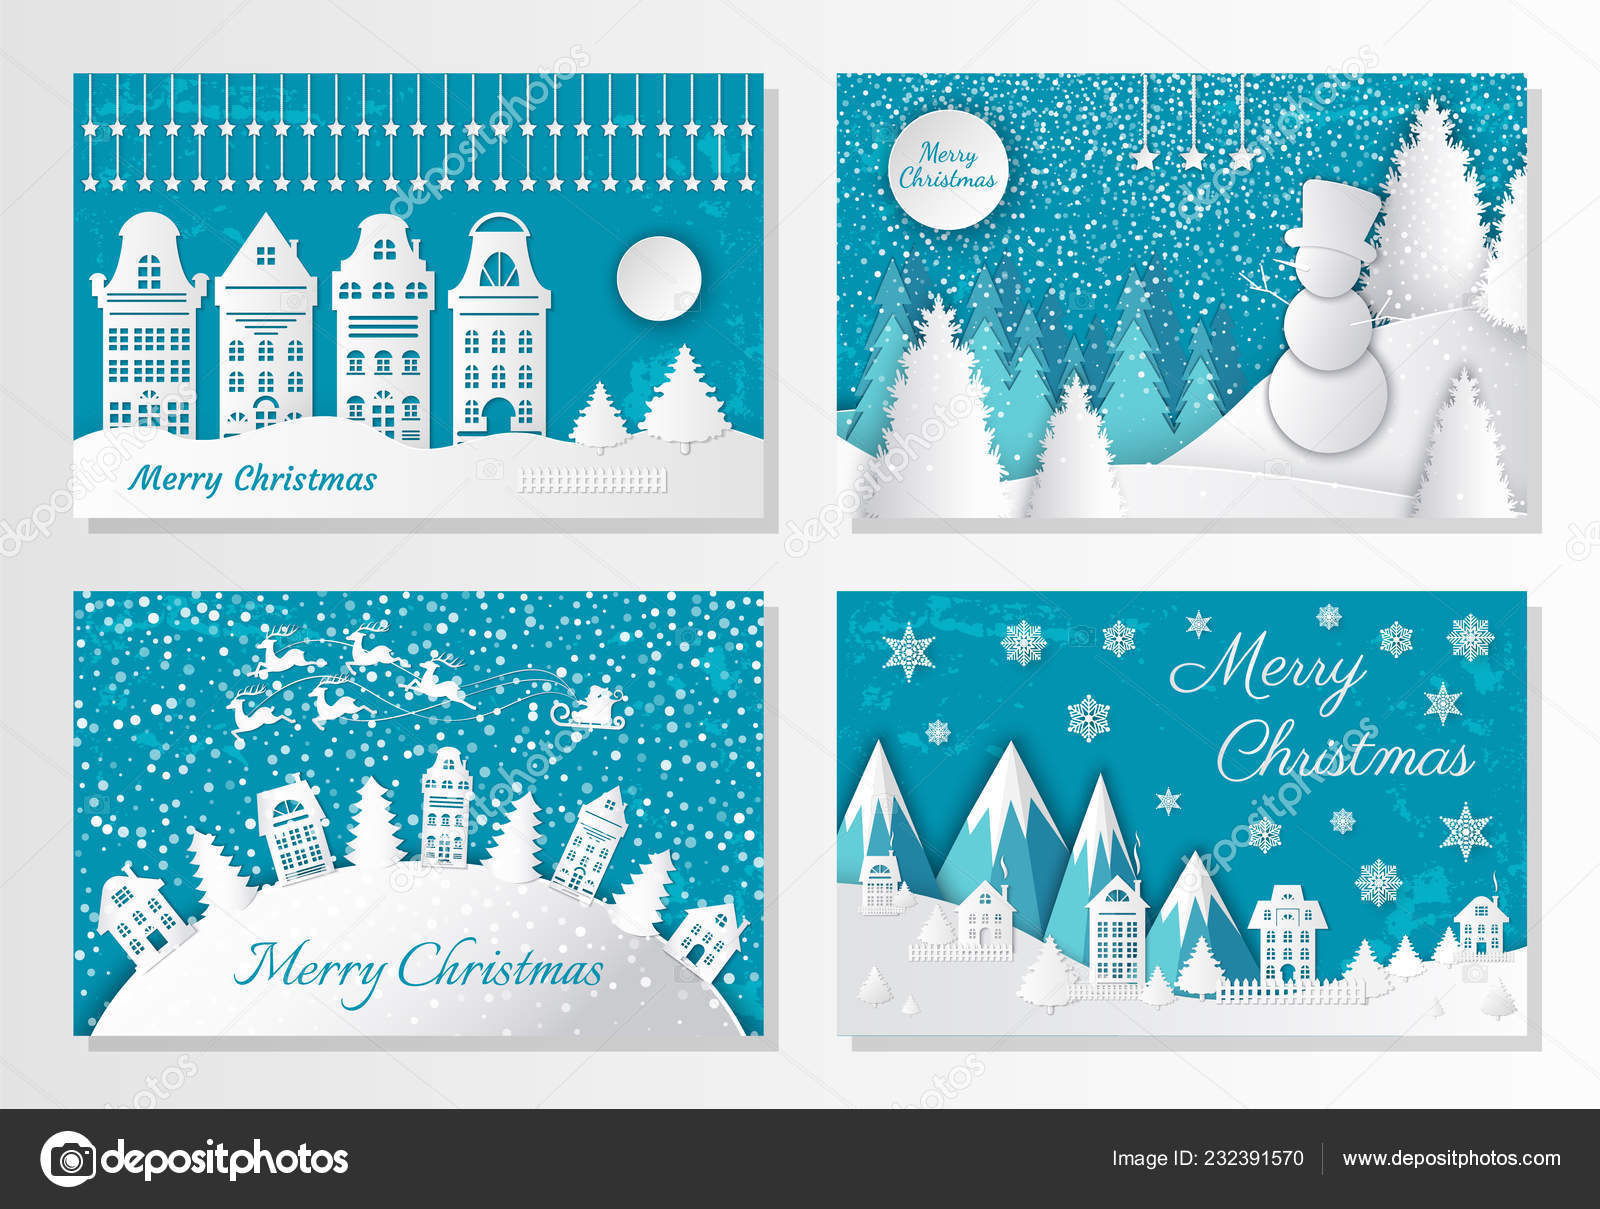 Mountain Christmas Cards.Merry Christmas Greeting Cards Mountains And City Stock